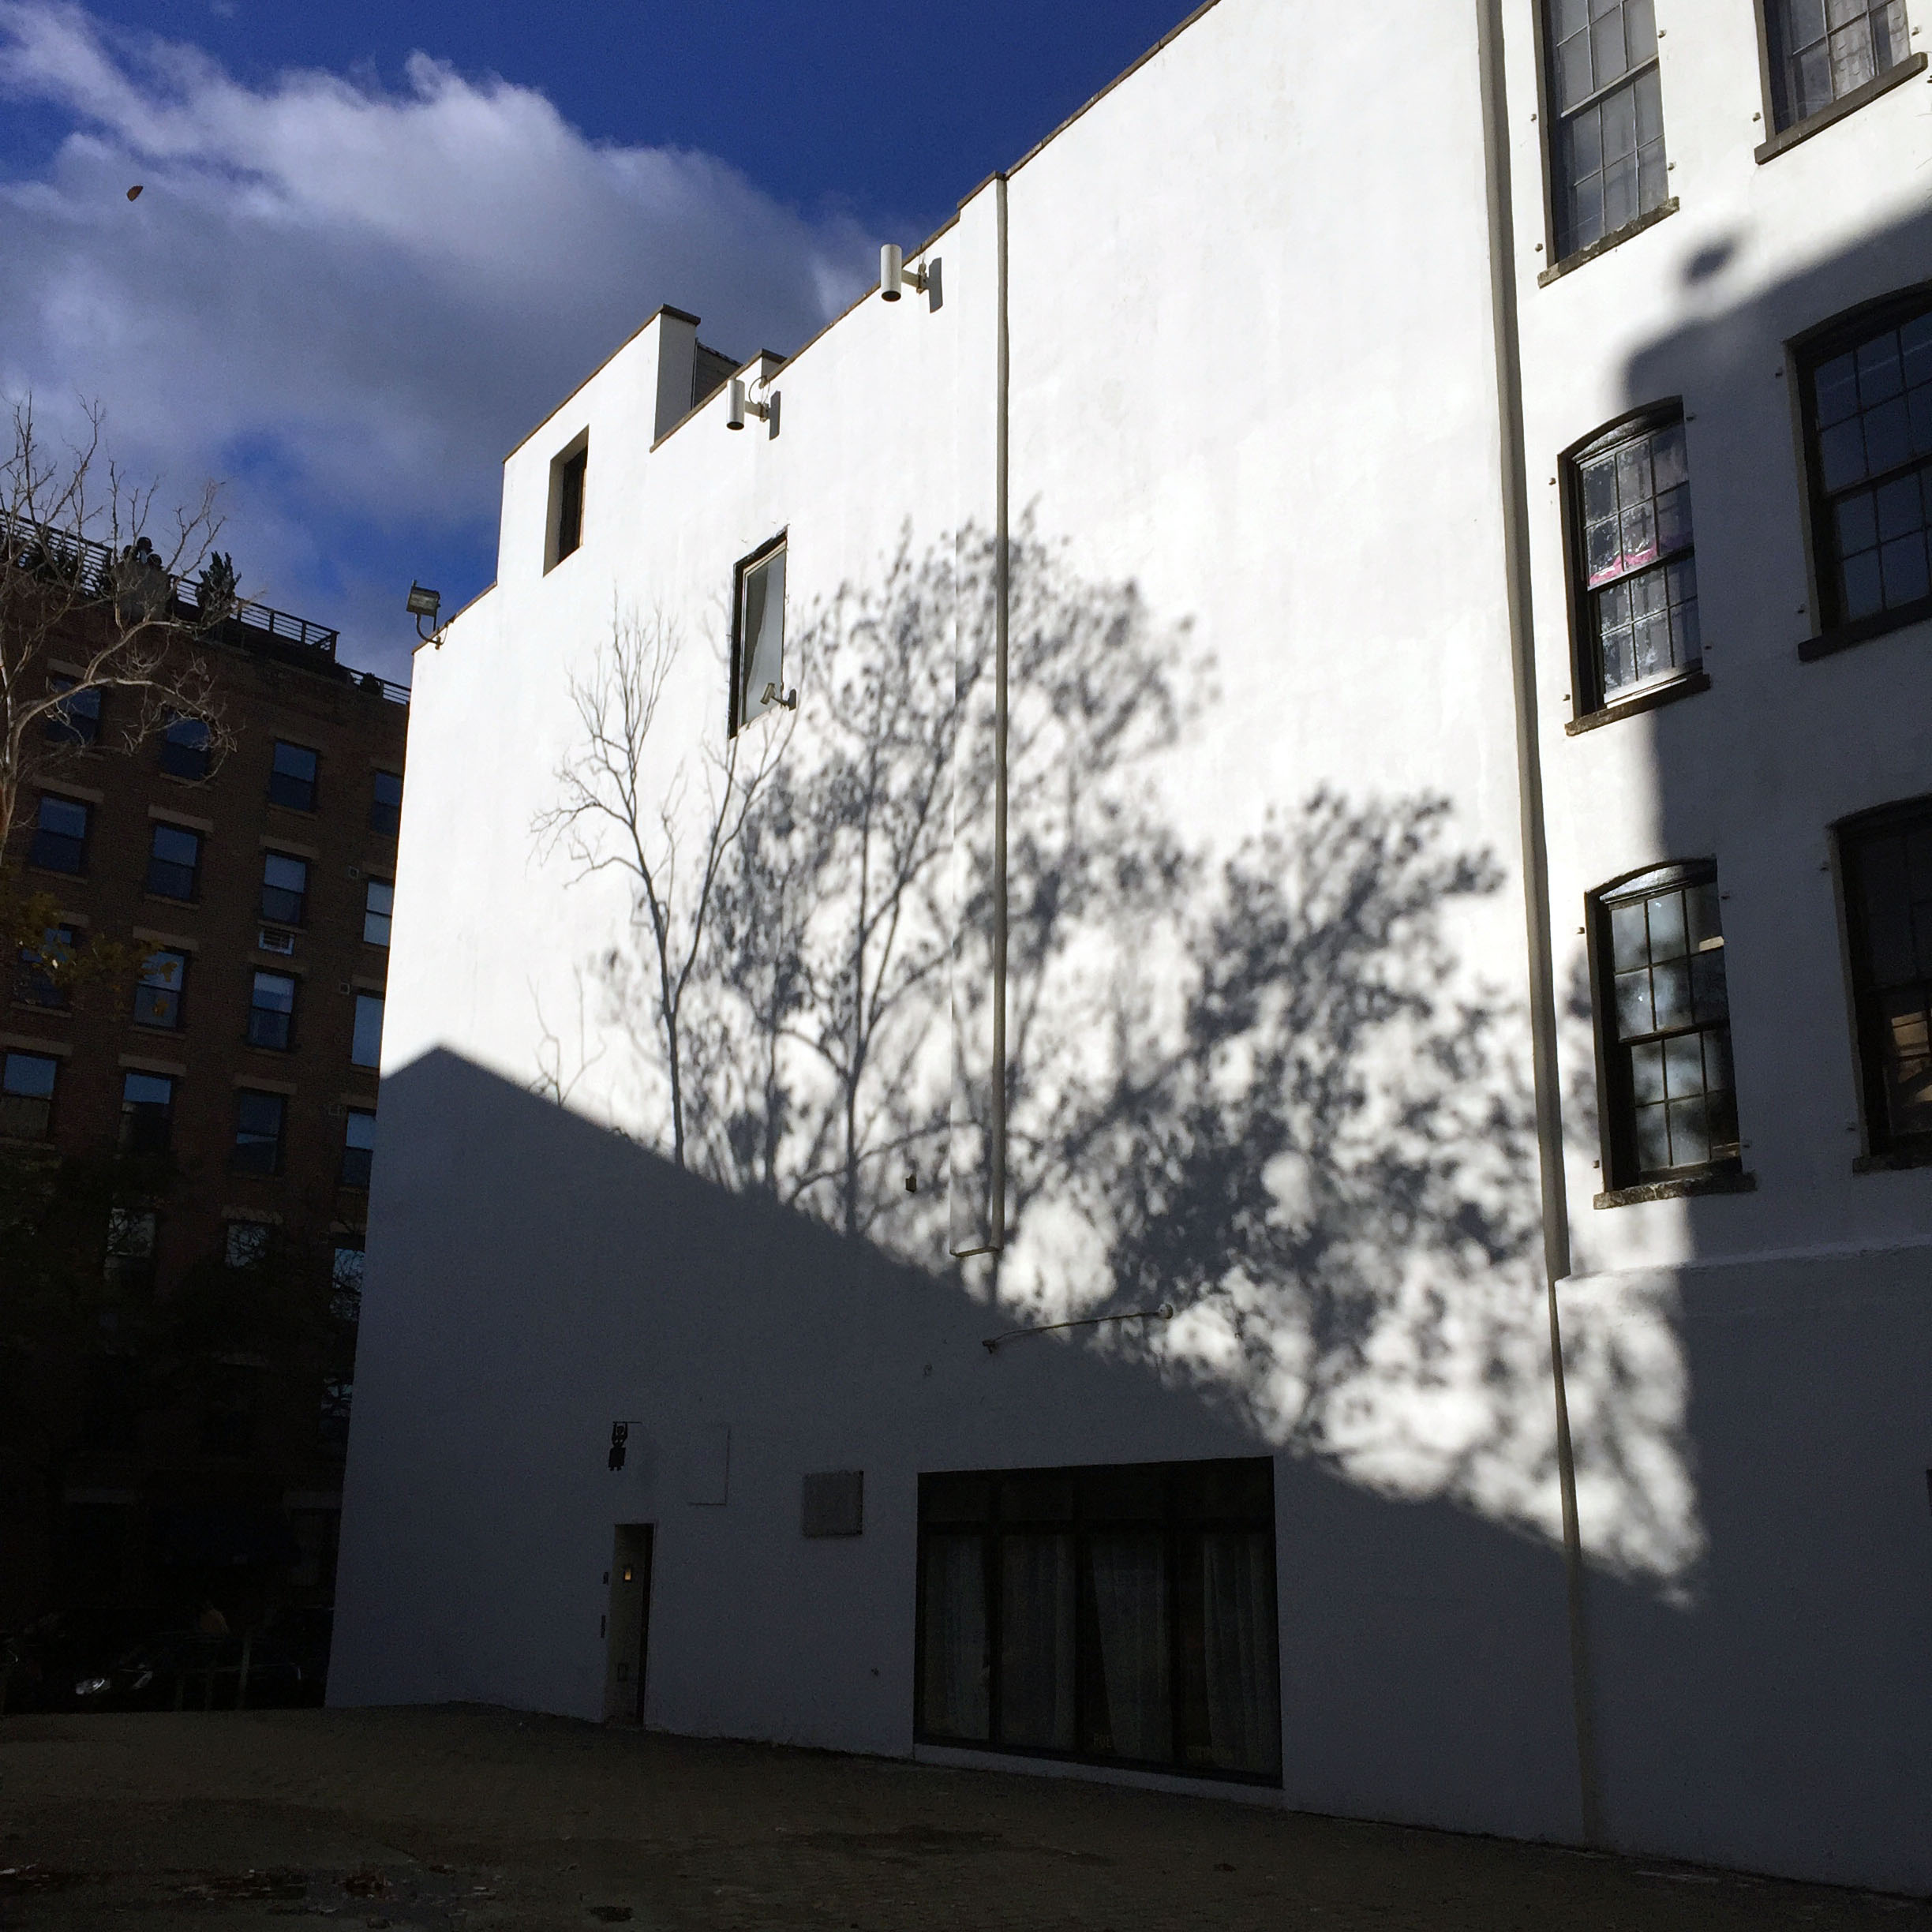 Tree shadows on SFPC building